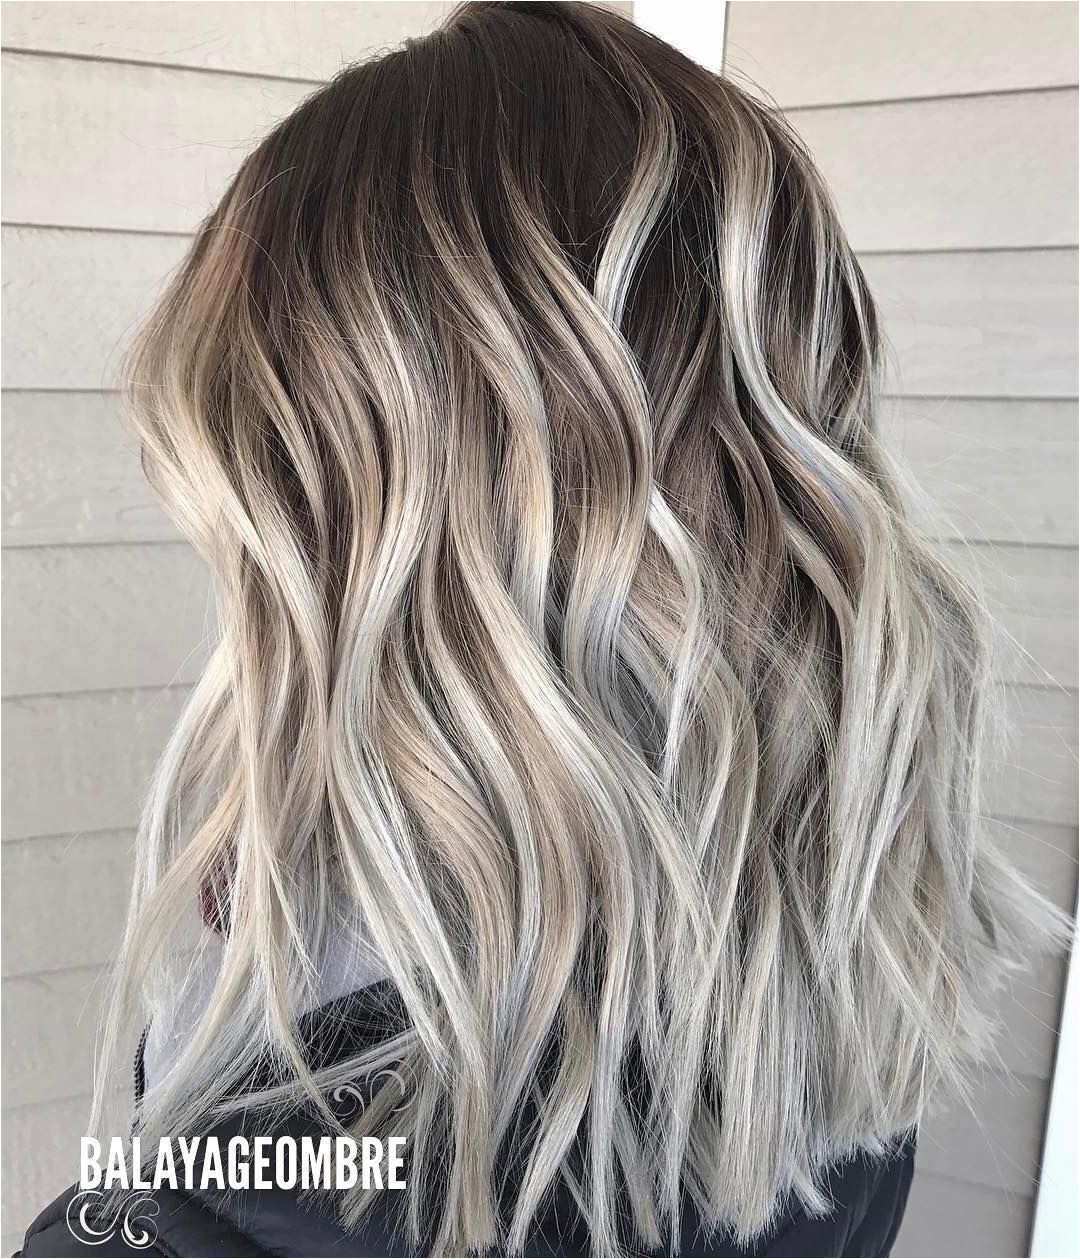 Medium Layered Hairstyle Designs Women Shoulder Length Hair Cuts for Thick Hair